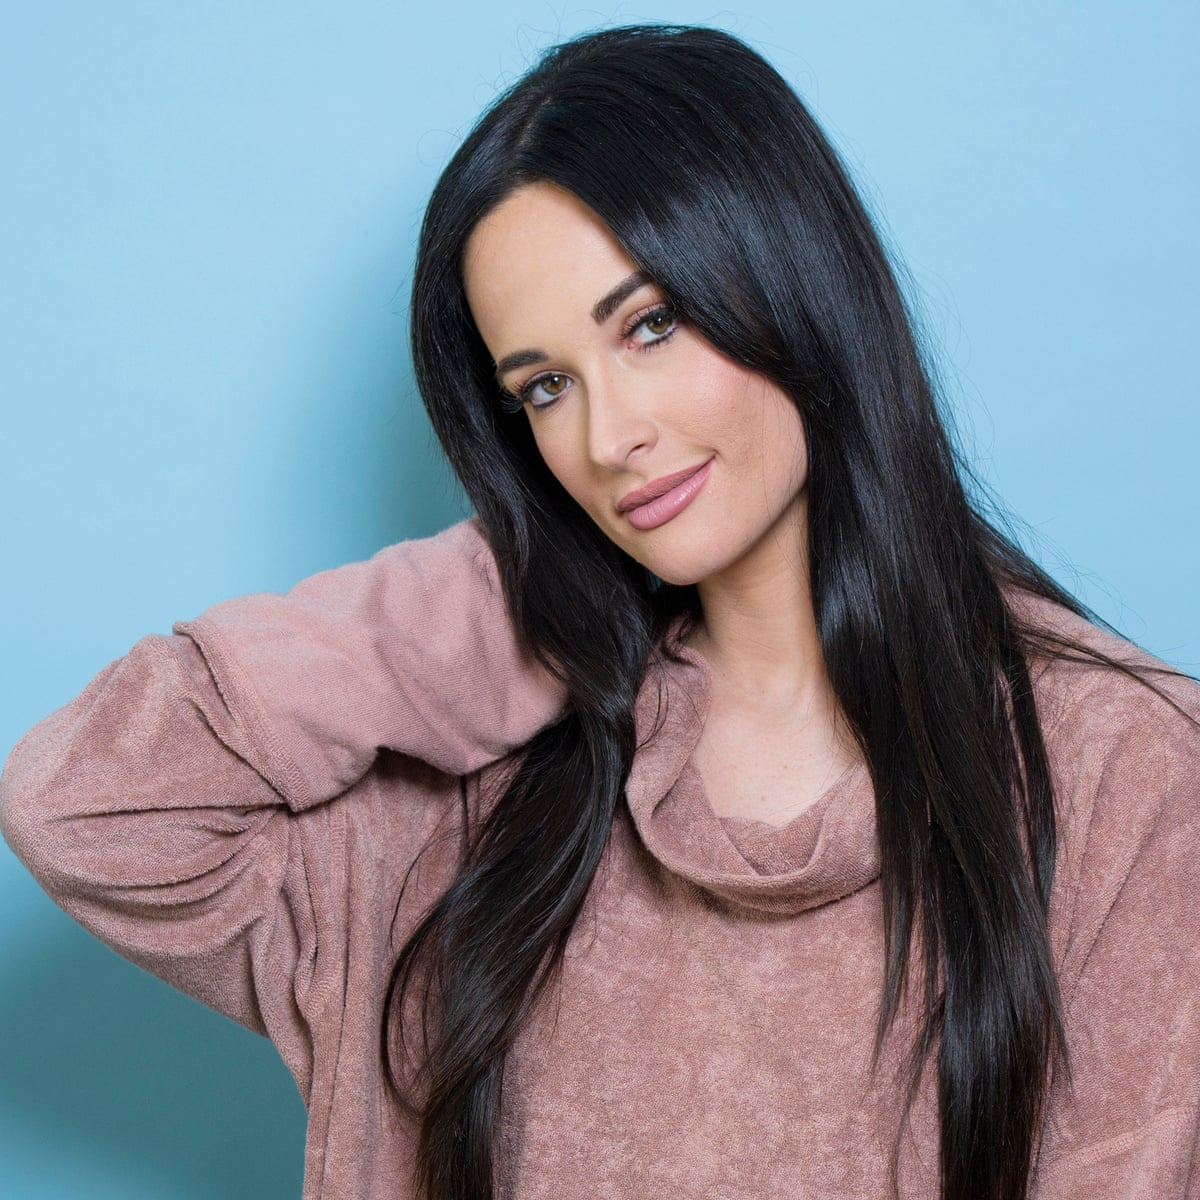 Kacey Musgraves Net Worth 2020, Bio, Relationship, and Career Updates